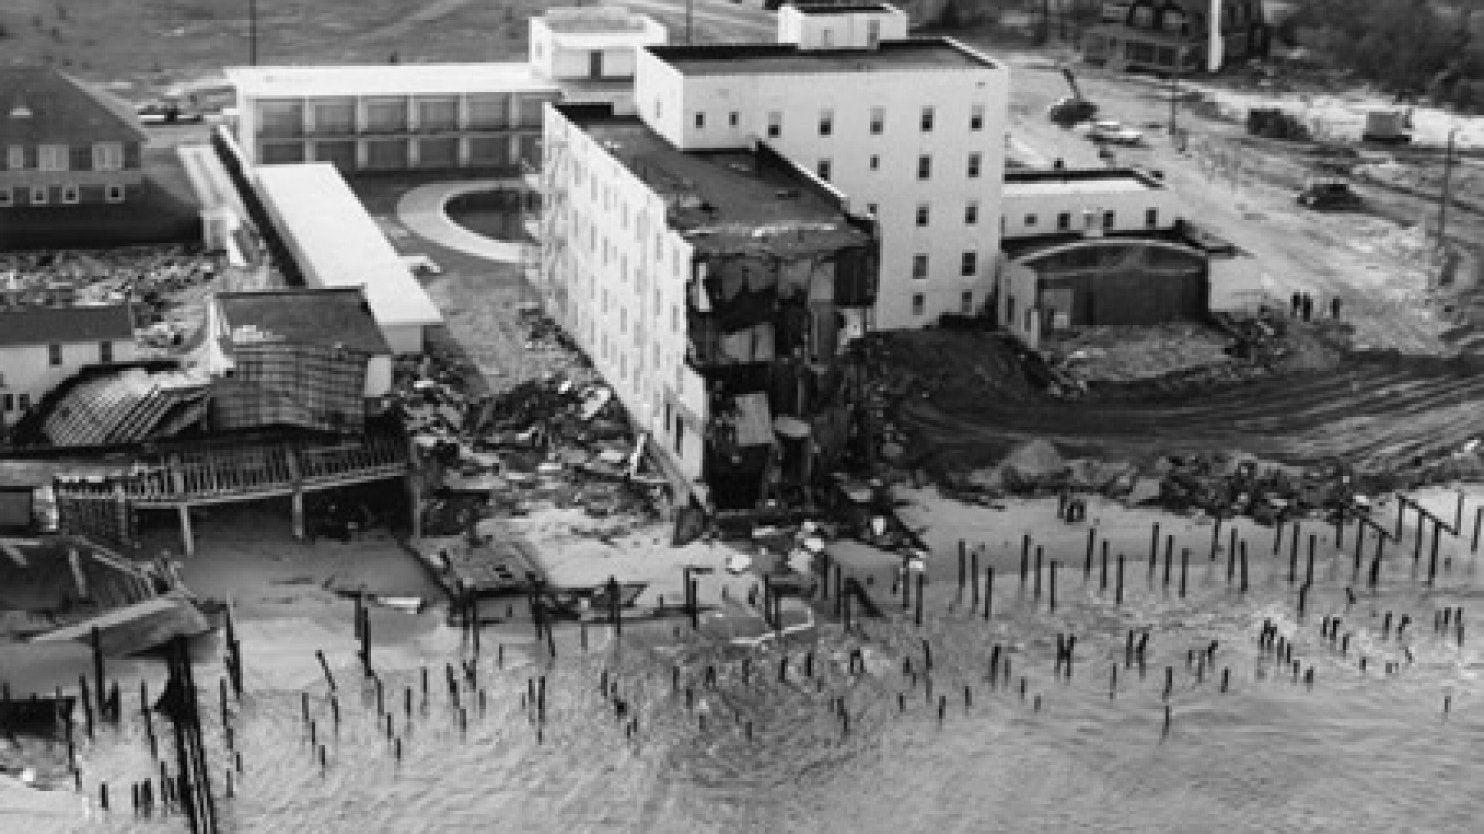 6 historic events that caused major coastal floods in the east